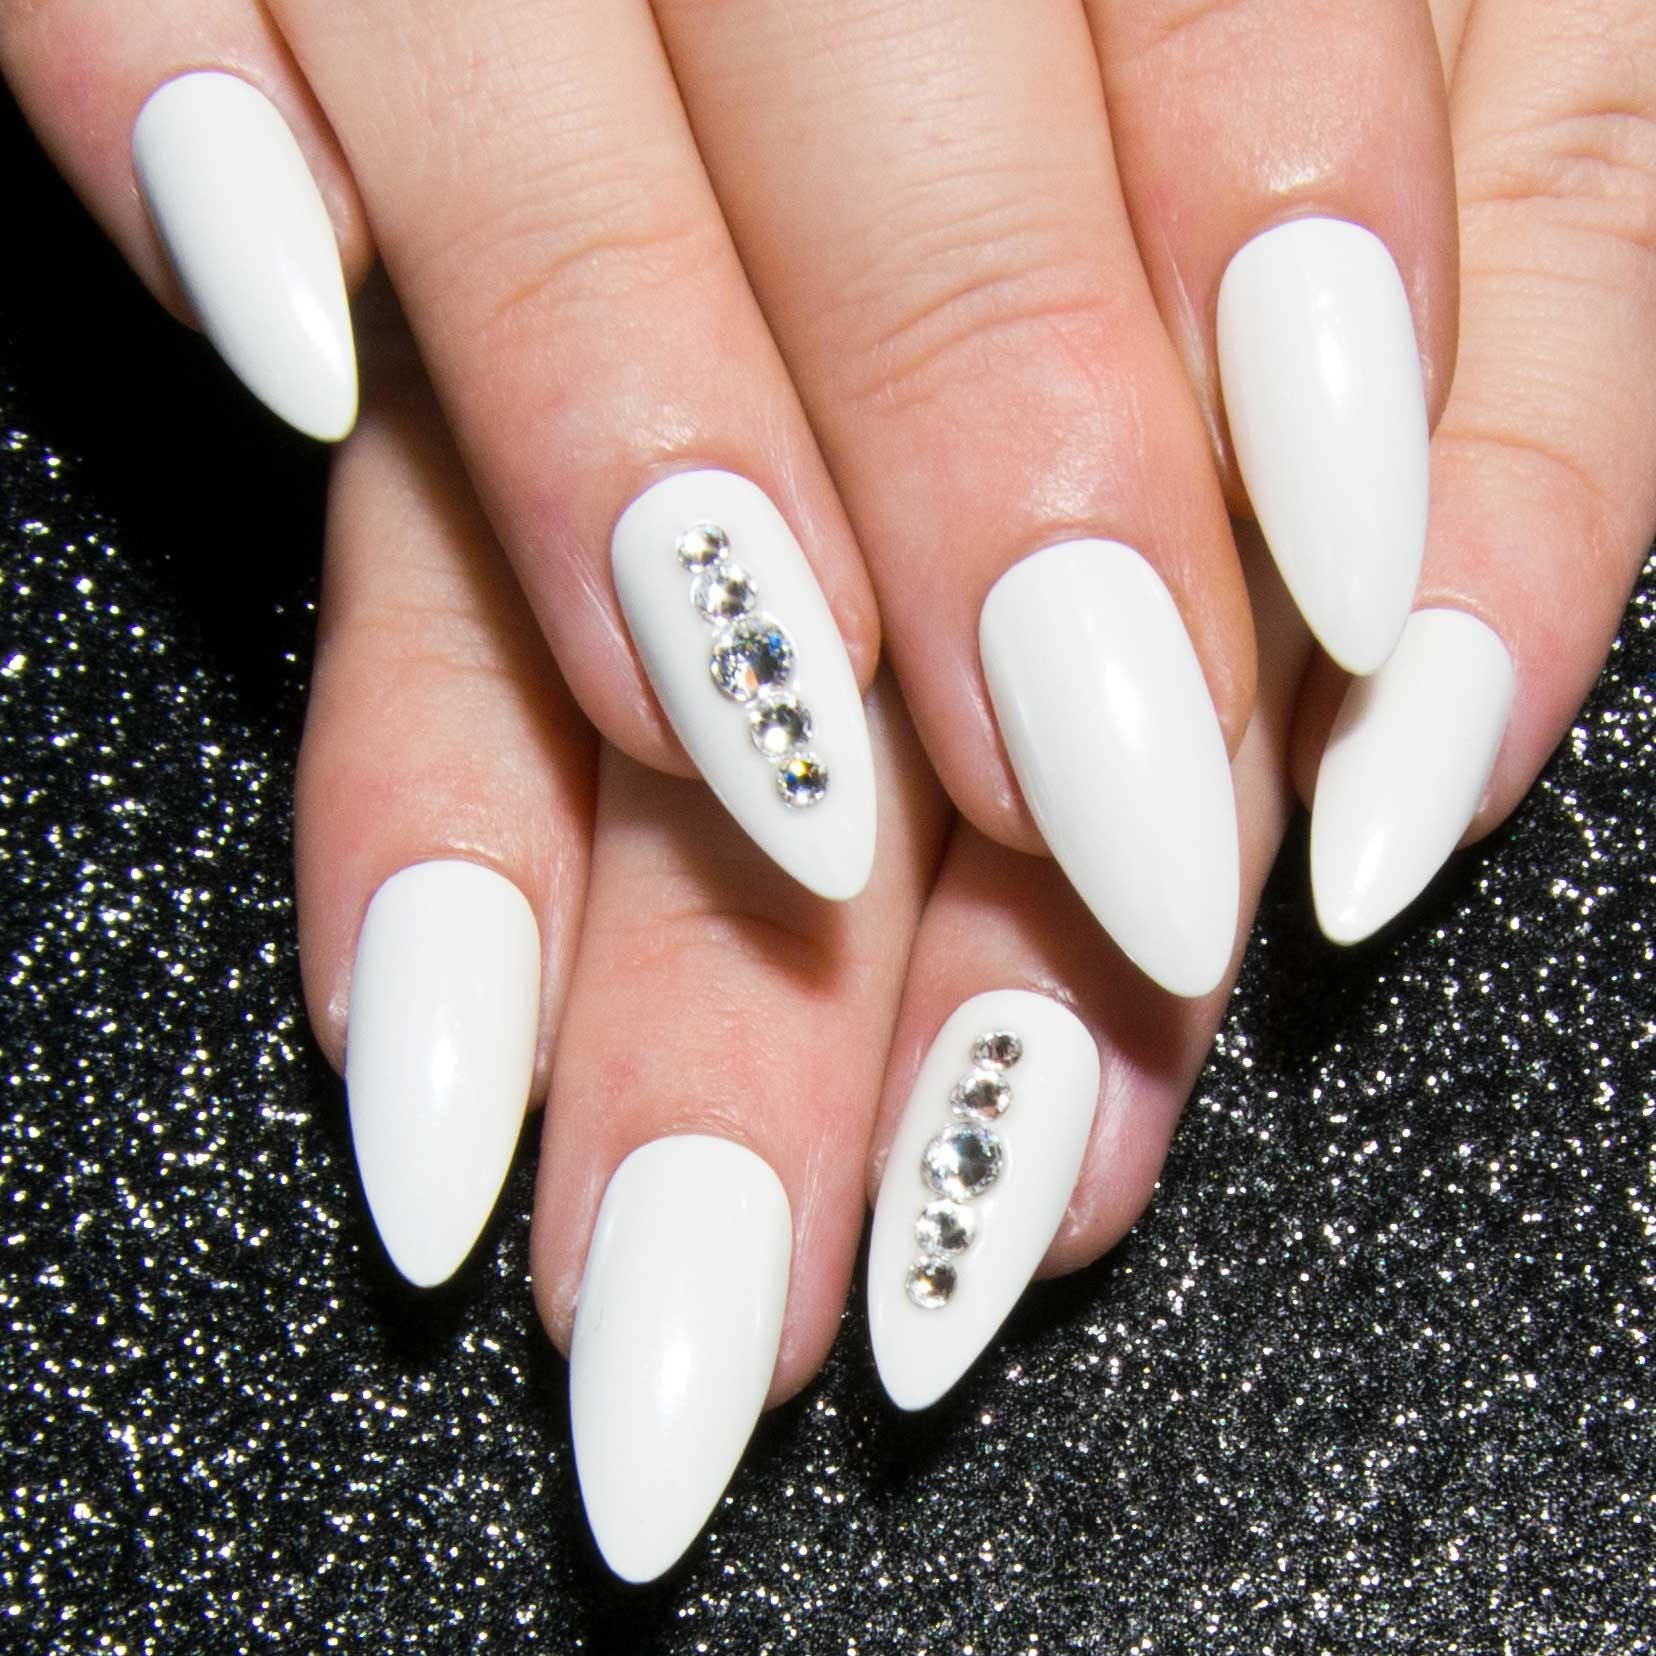 White Fake Nails - Chrome Press On Nails - Bridal Nails - Almond ...